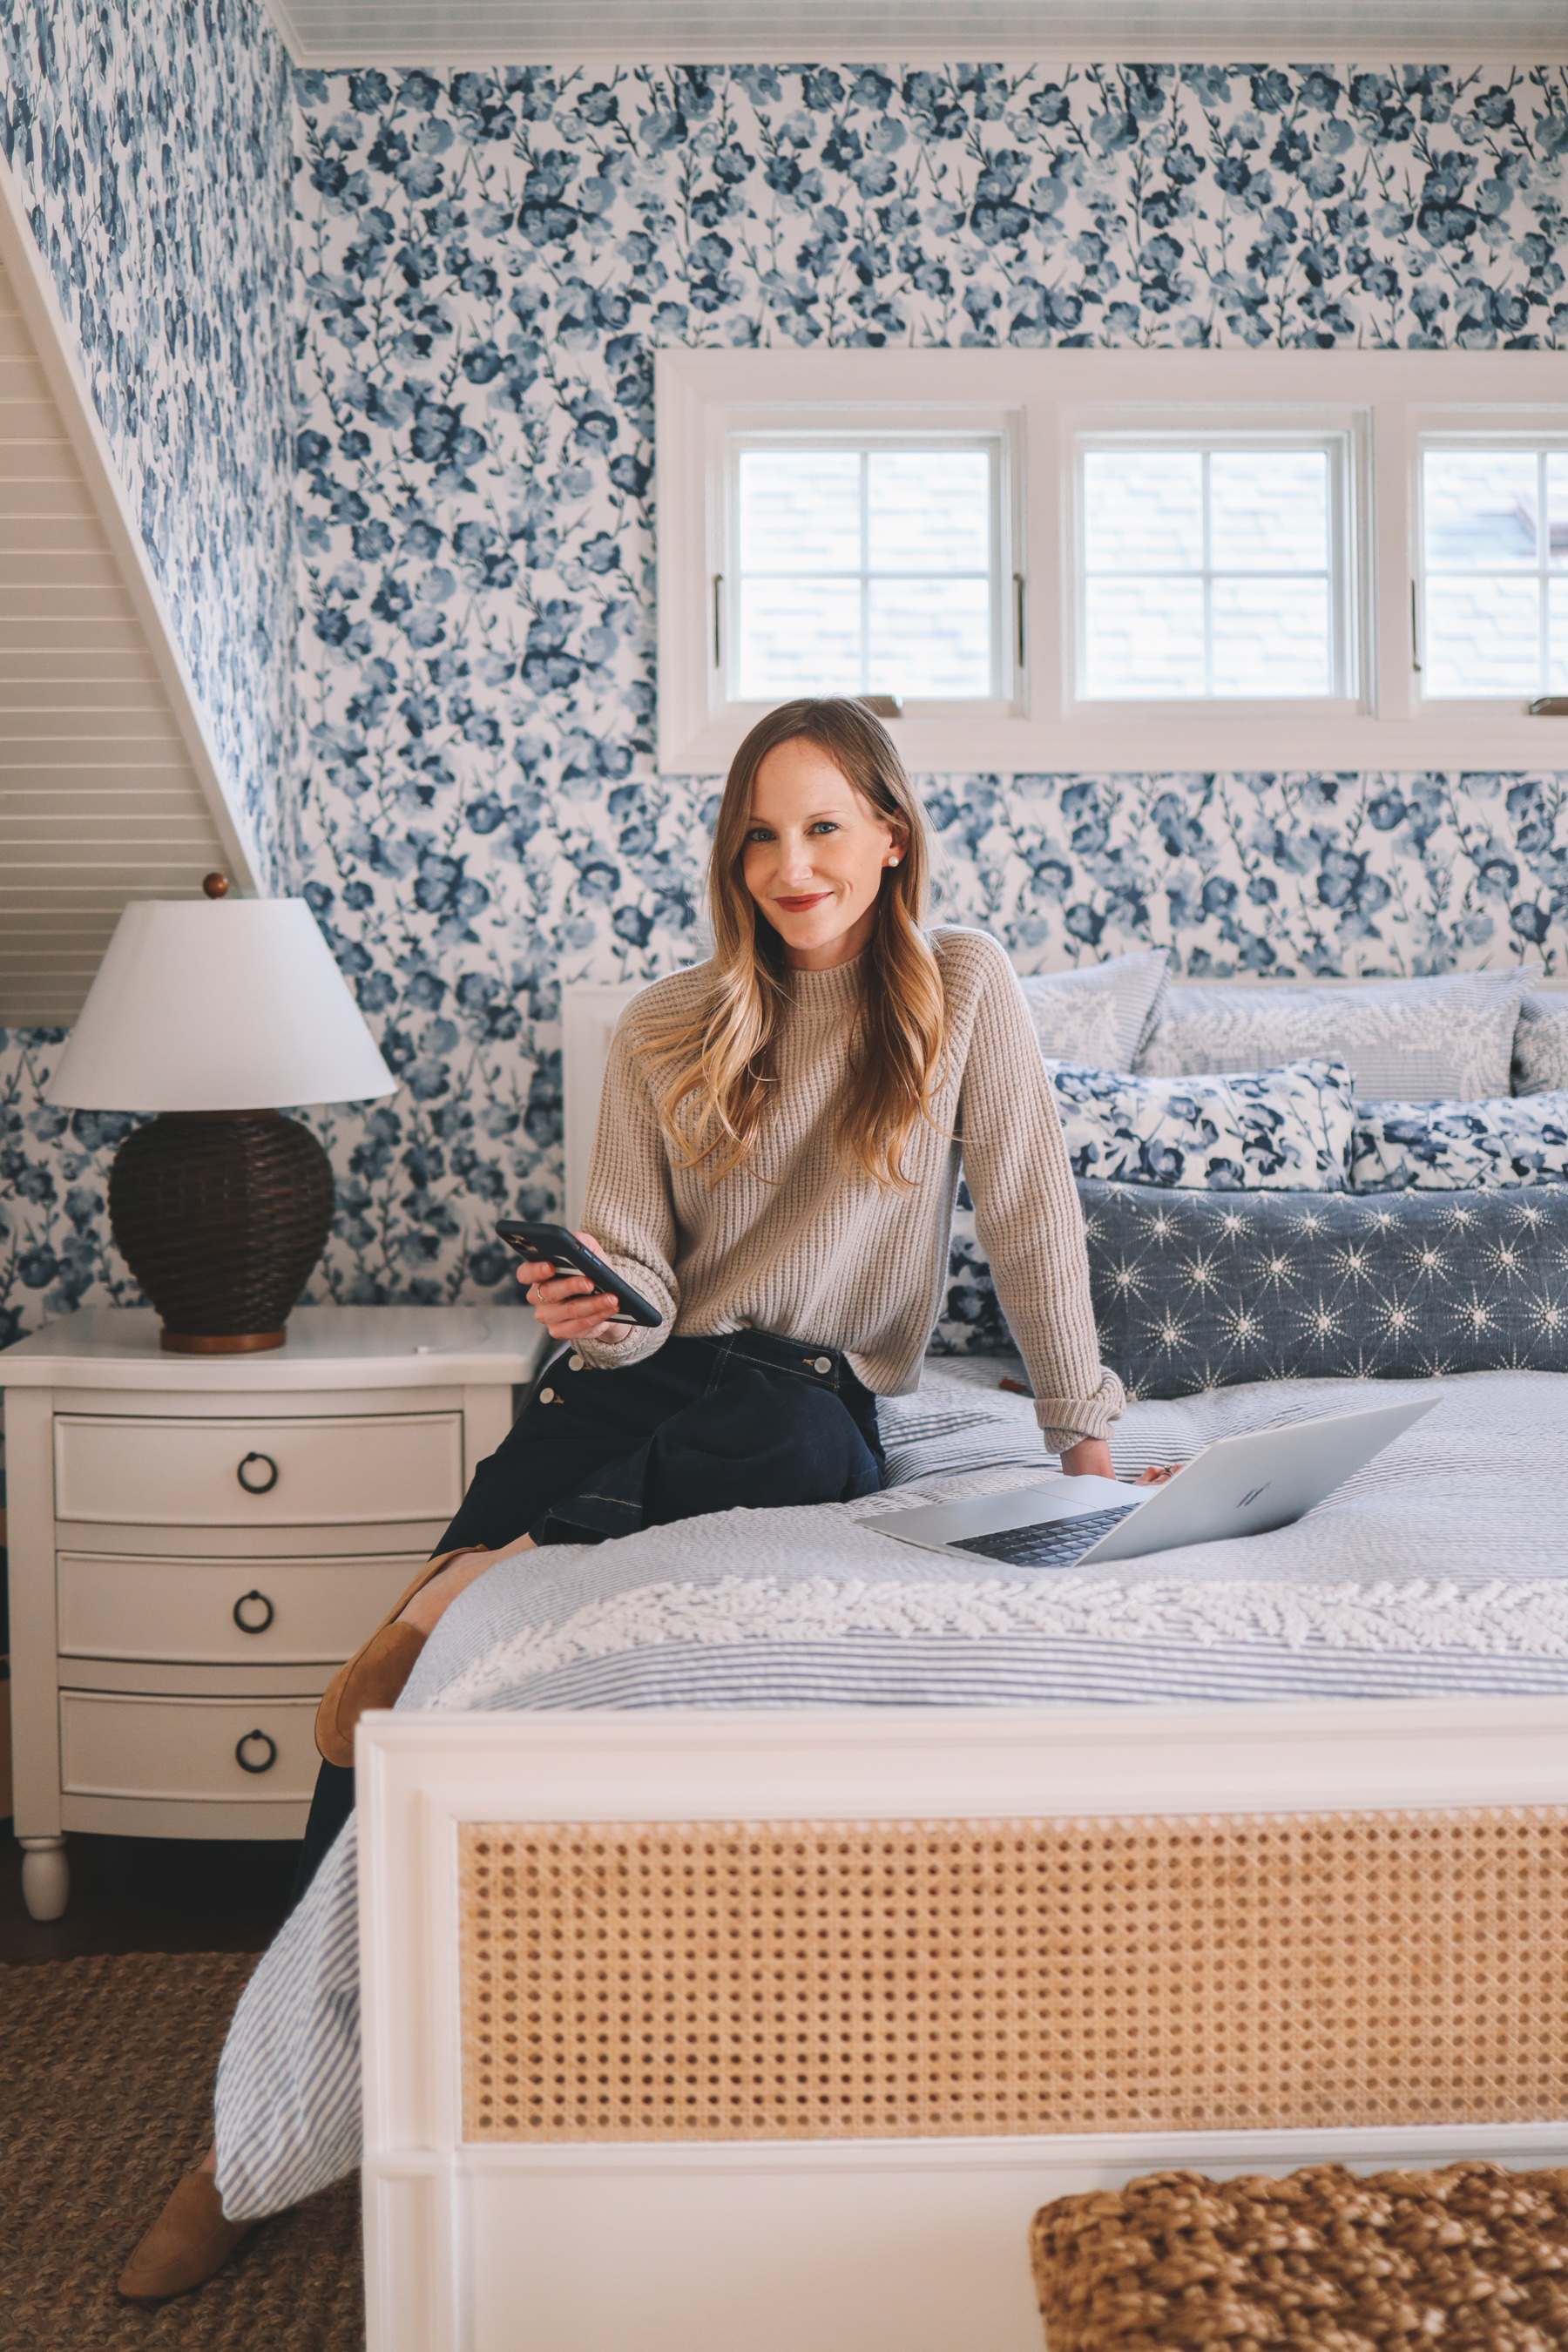 How Are You? | Kelly in the City Bedroom Wallpaper